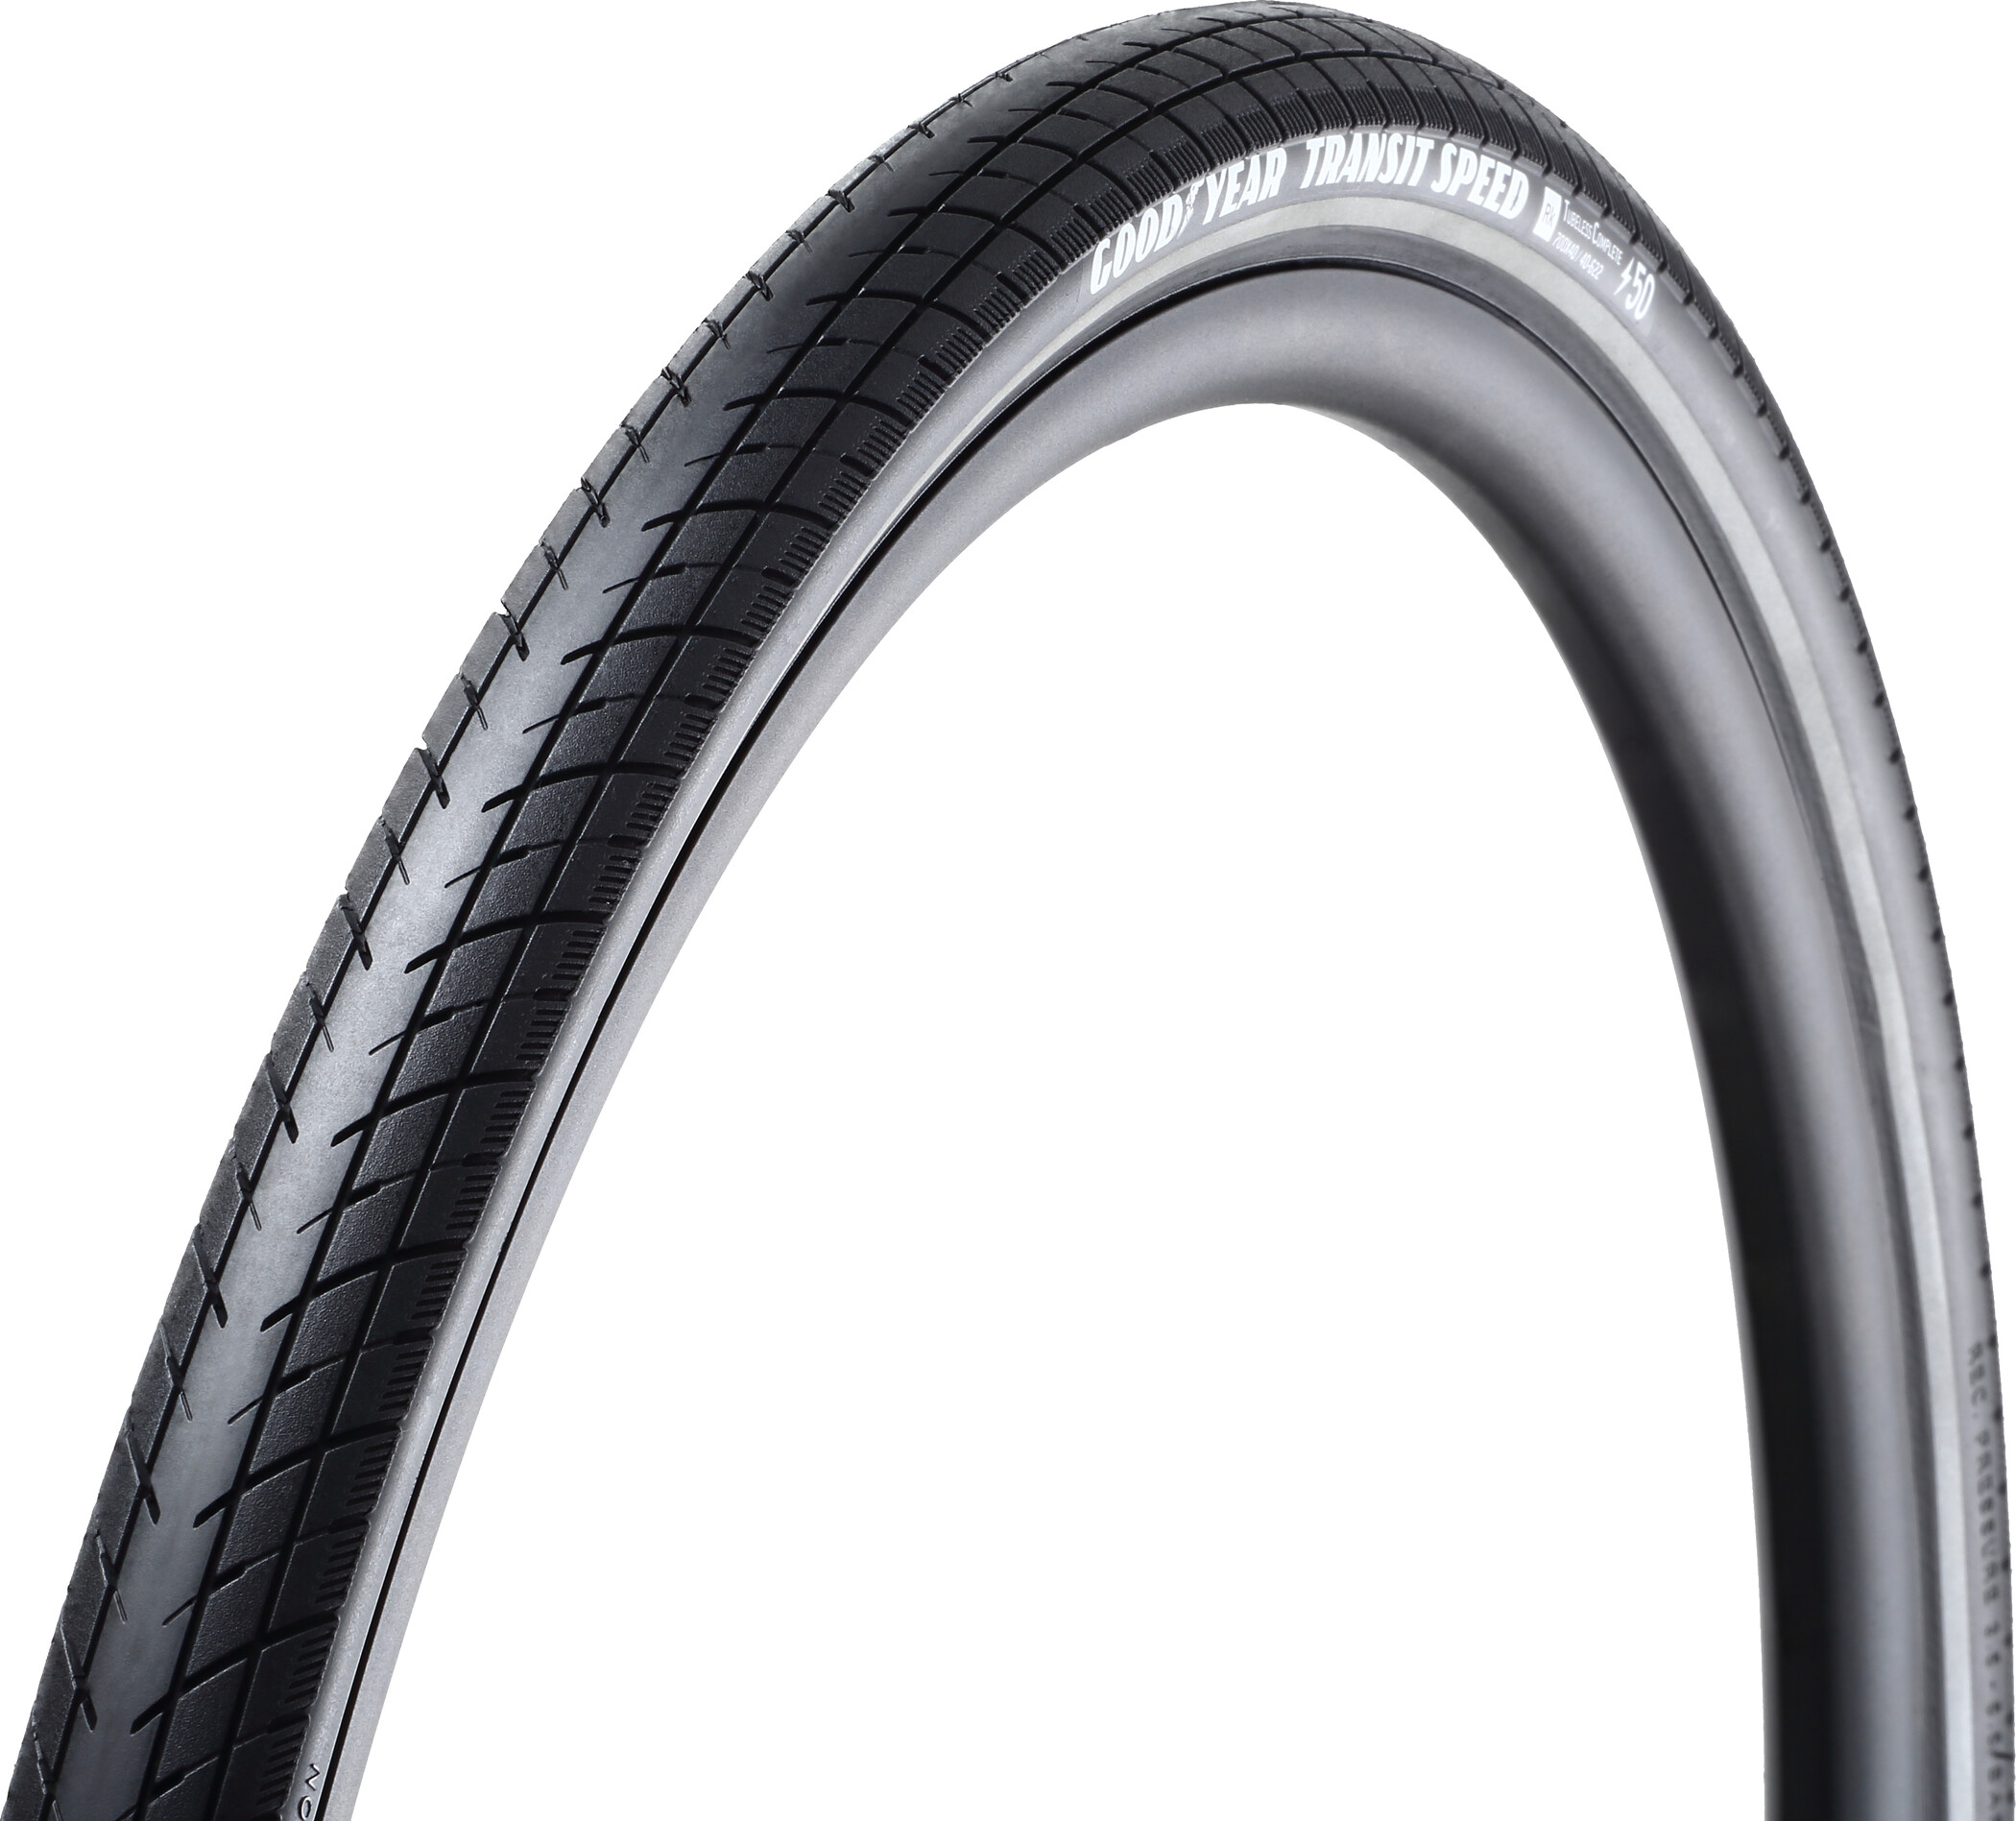 Goodyear Transit Speed Foldedæk 40-622 Tubeless Complete Dynamic Silica4 e50, black reflected (2019)   Tyres